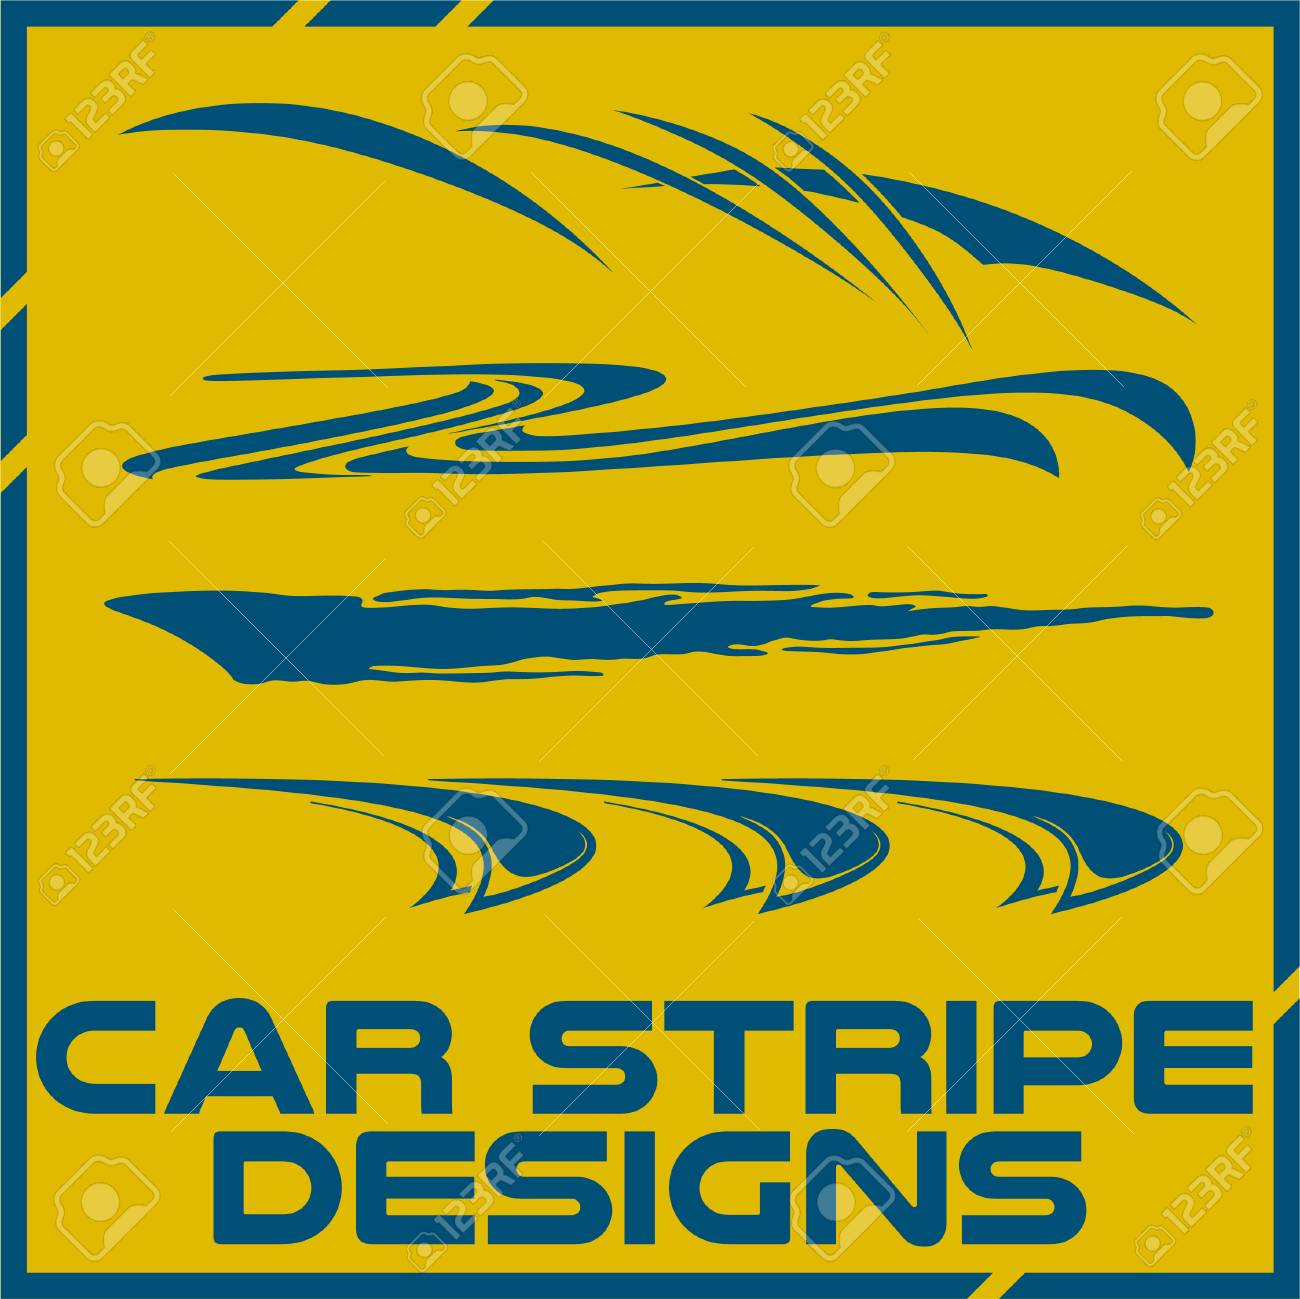 Tribal and cool car stripe design set adhesive vinyl stickers design for vehicles stock vector